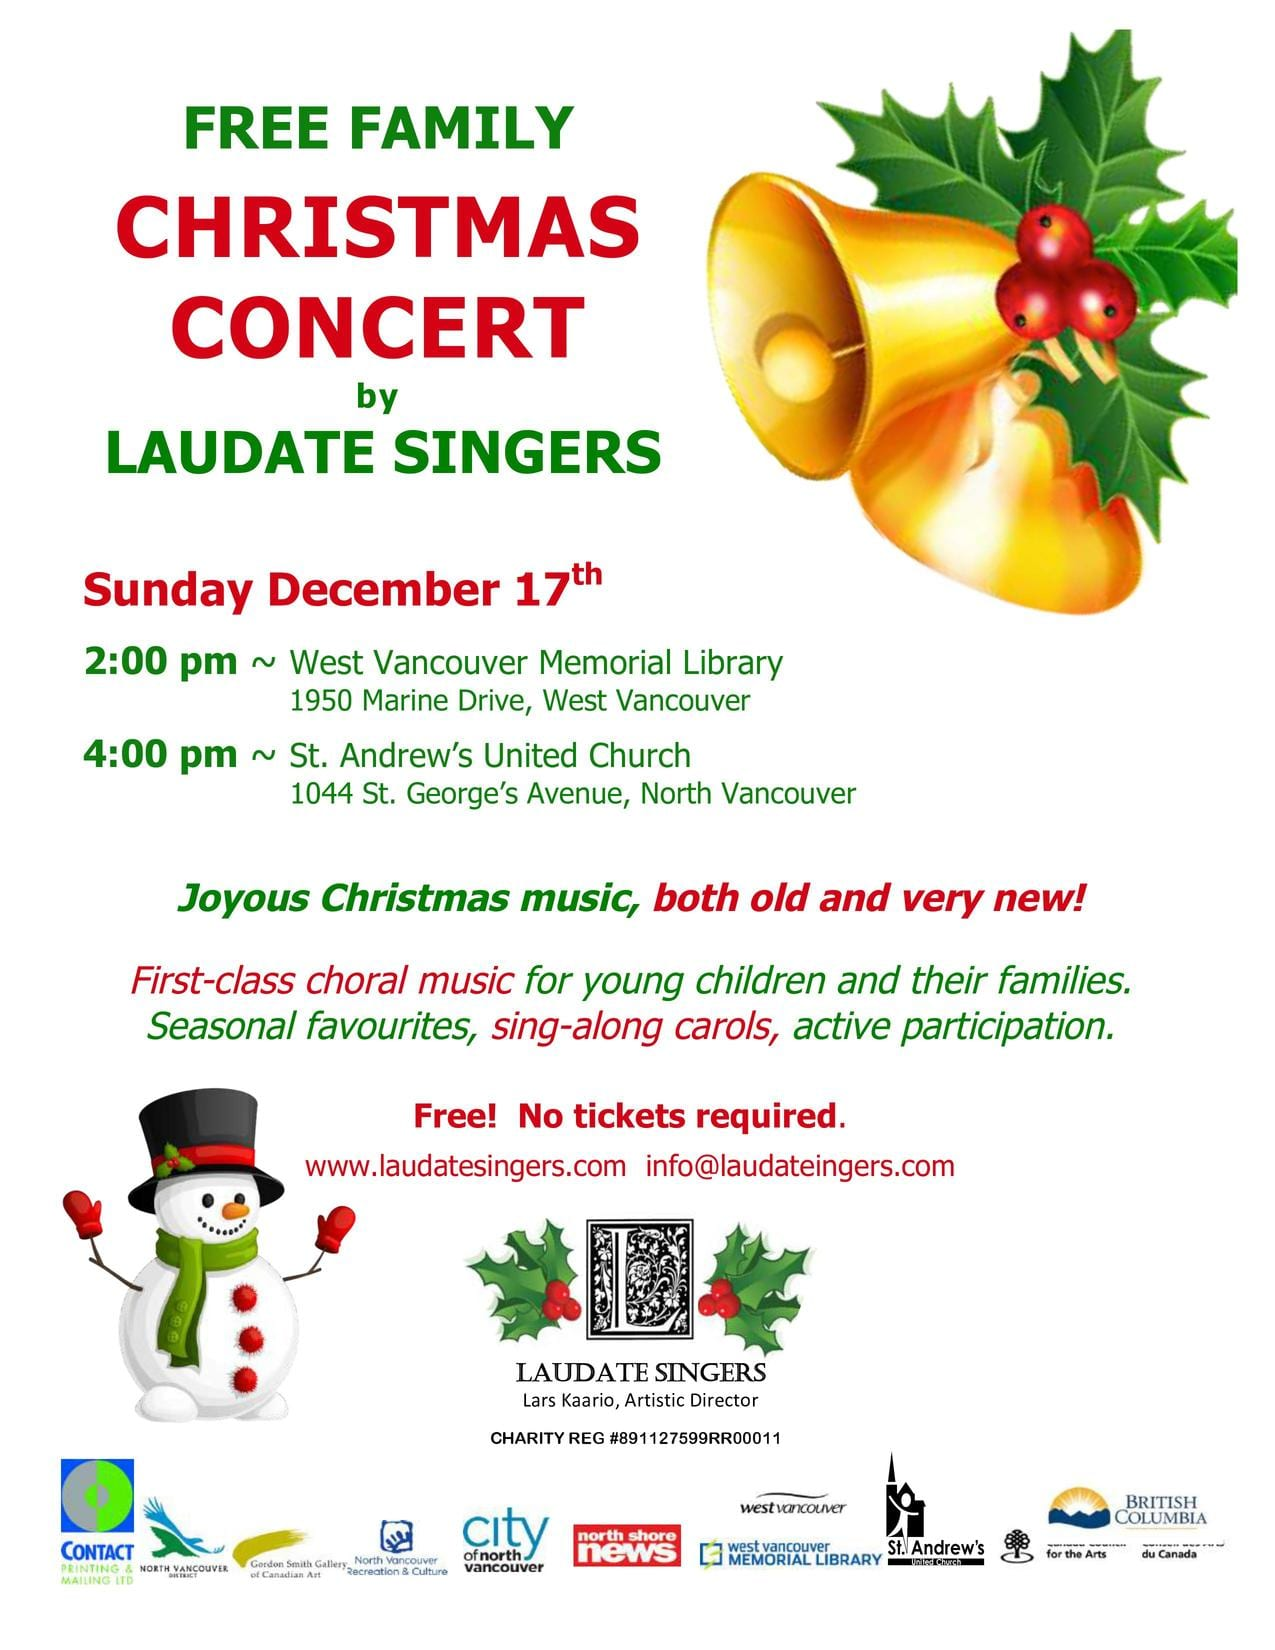 Free Family Christmas Concert at the West Vancouver Memorial Library